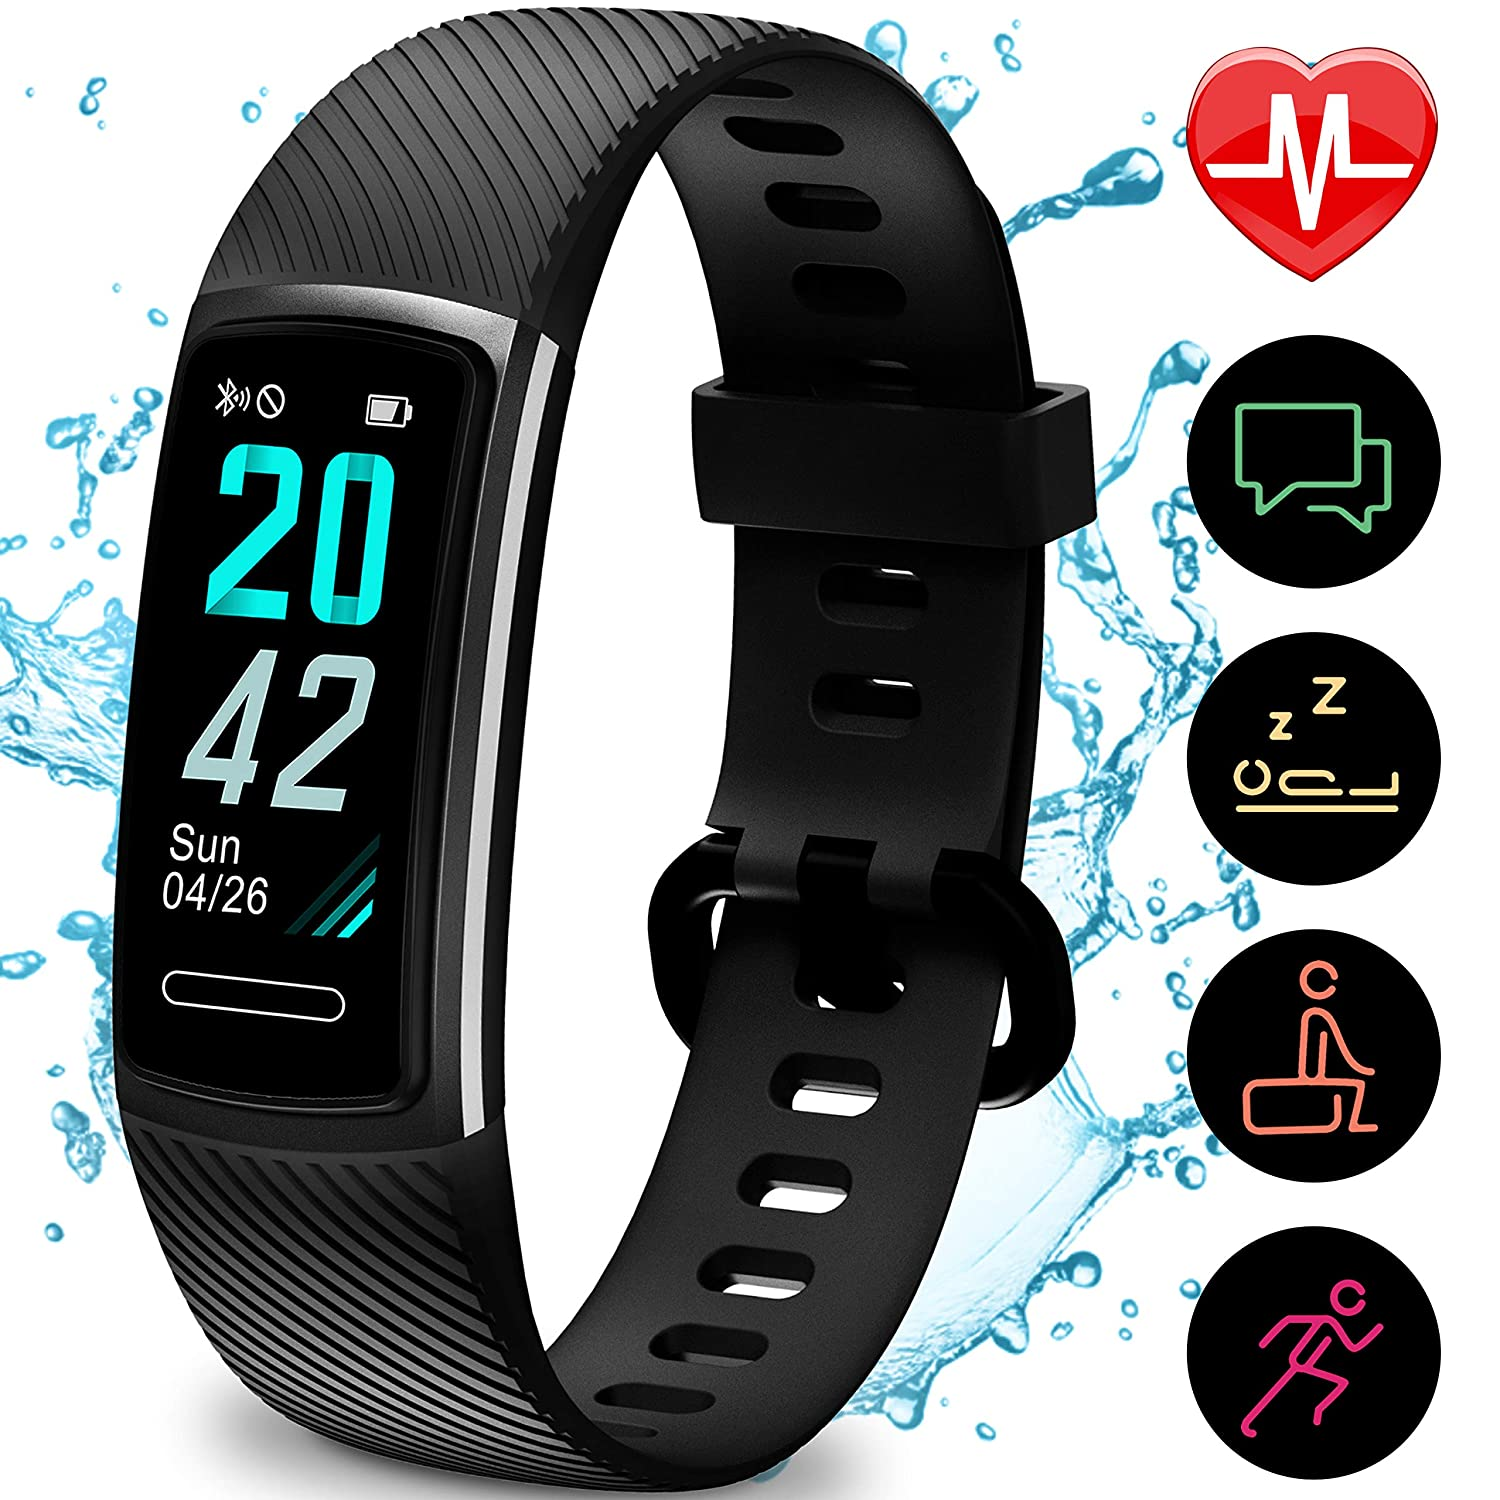 Updated 2019 Version High-End Fitness Tracker HR, Activity Trackers Health Exercise Watch with Heart Rate and Sleep Monitor, Smart Band Calorie Counter, Step Counter, Pedometer Walking for Men Women